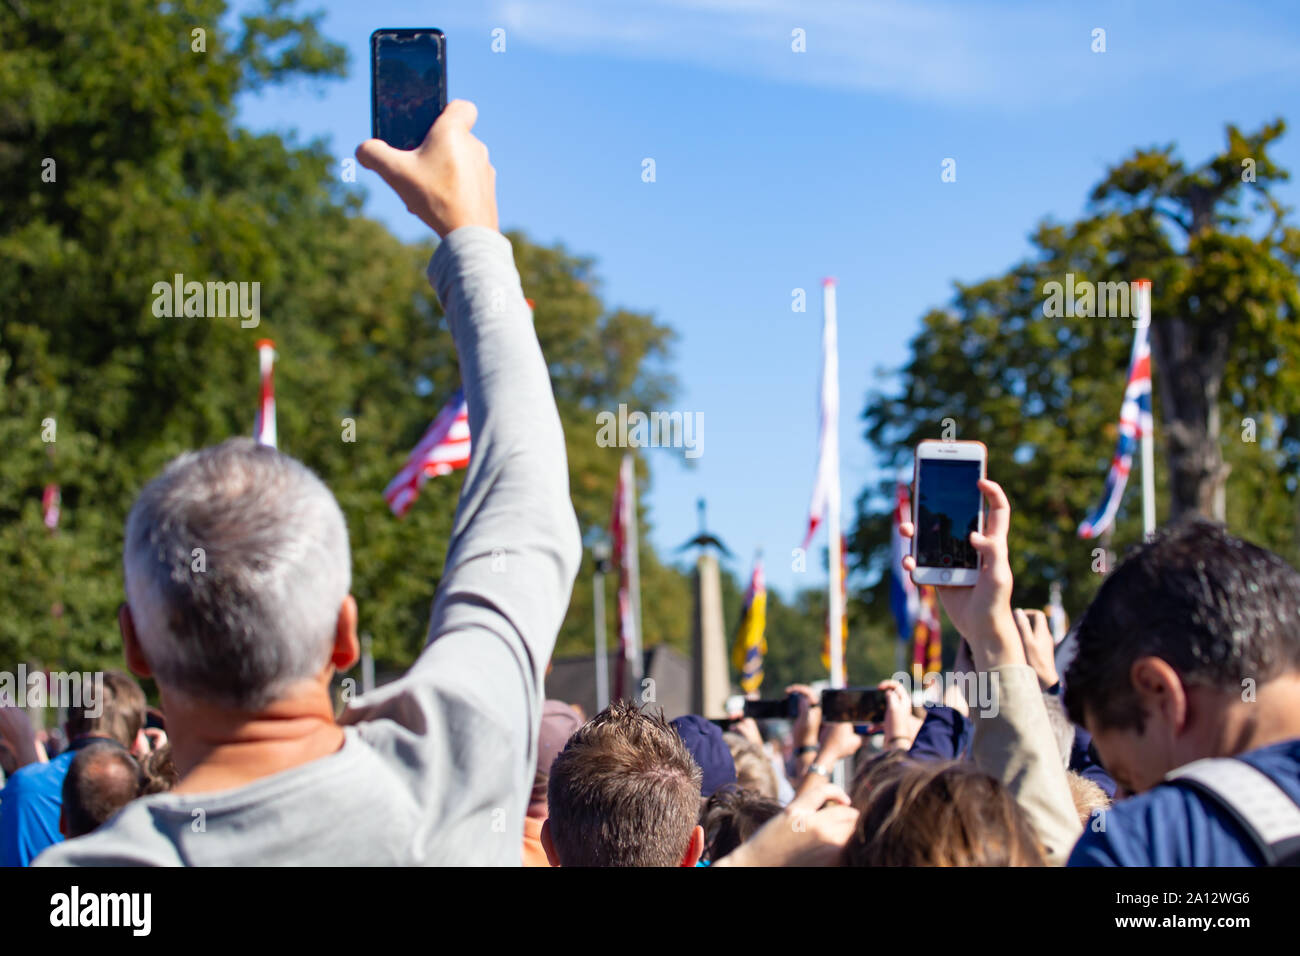 Ede, Netherlands, September 19, 2019: Visitors watching WWII memoral 75 years remembrance of Operation Market Garden WOII Arnhem in the Netherlands Stock Photo